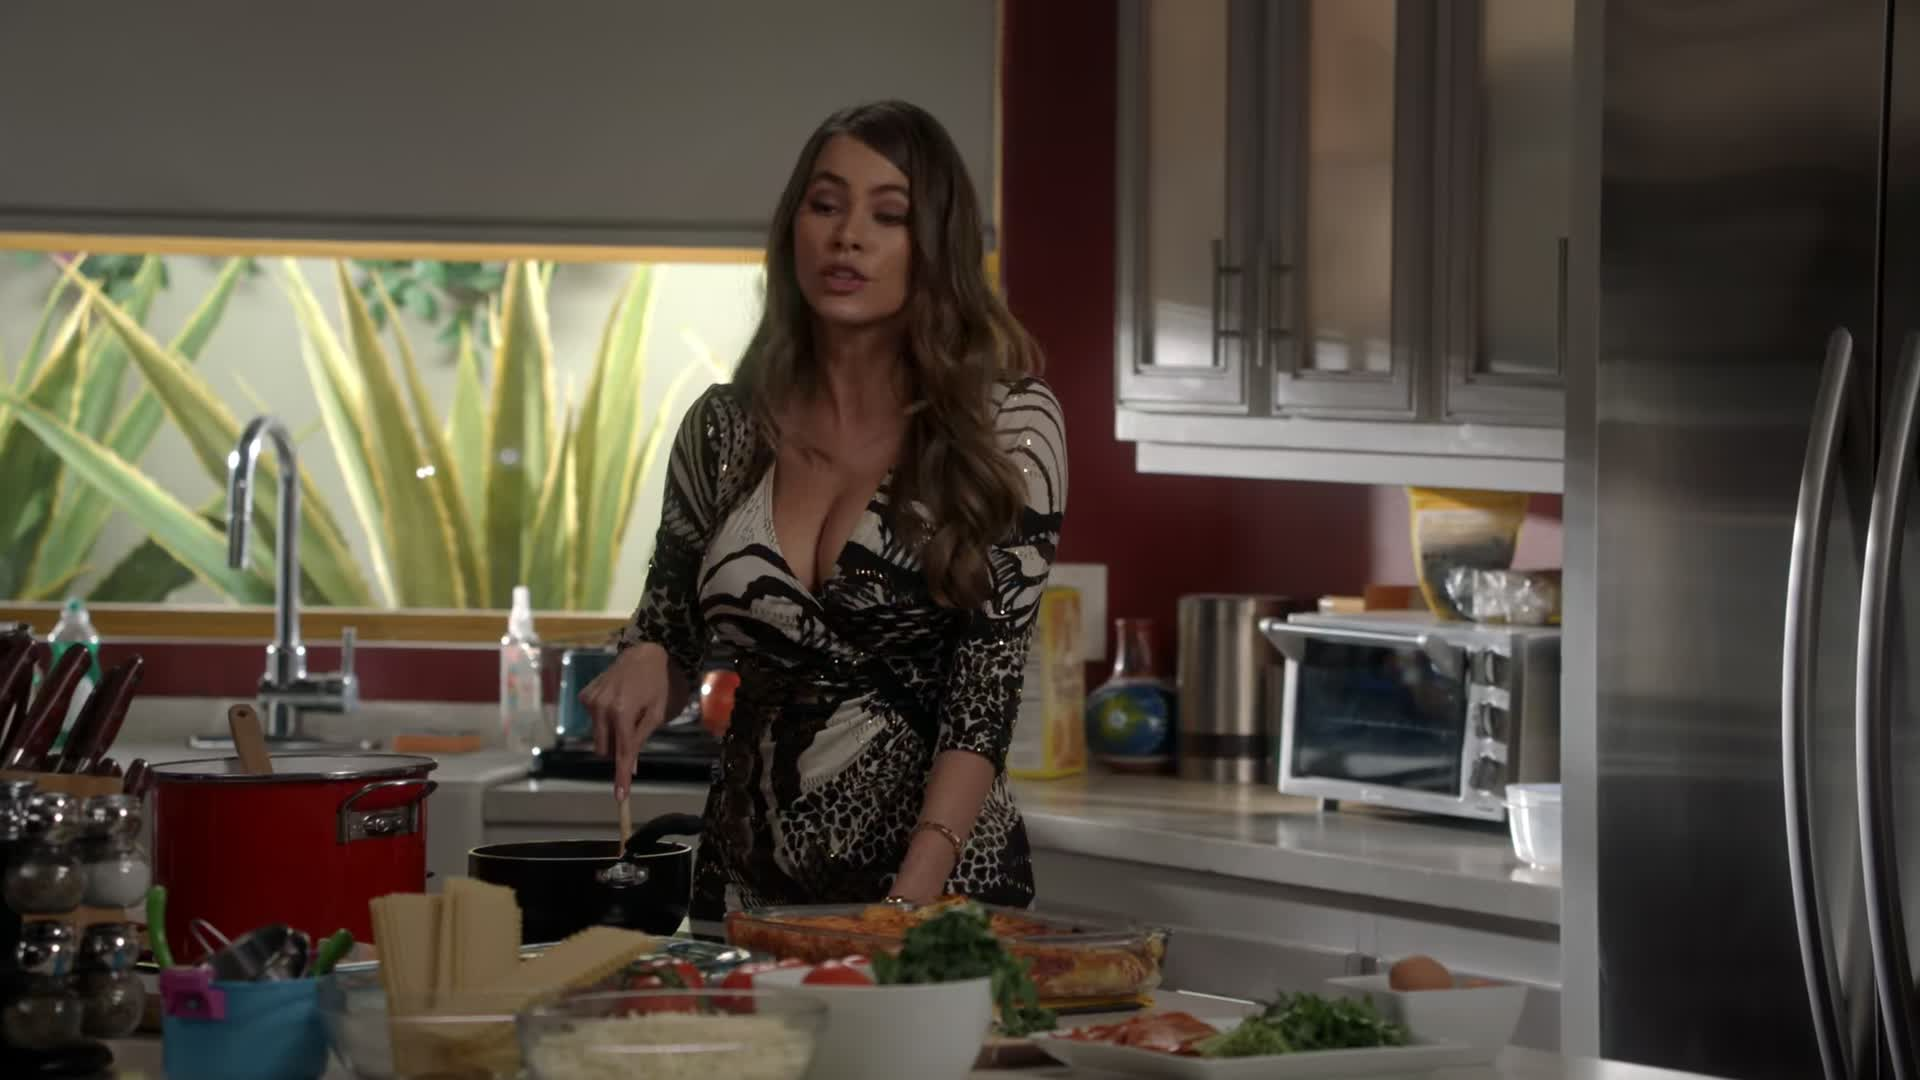 Sofia Vergara huge cleavage making some lasagna